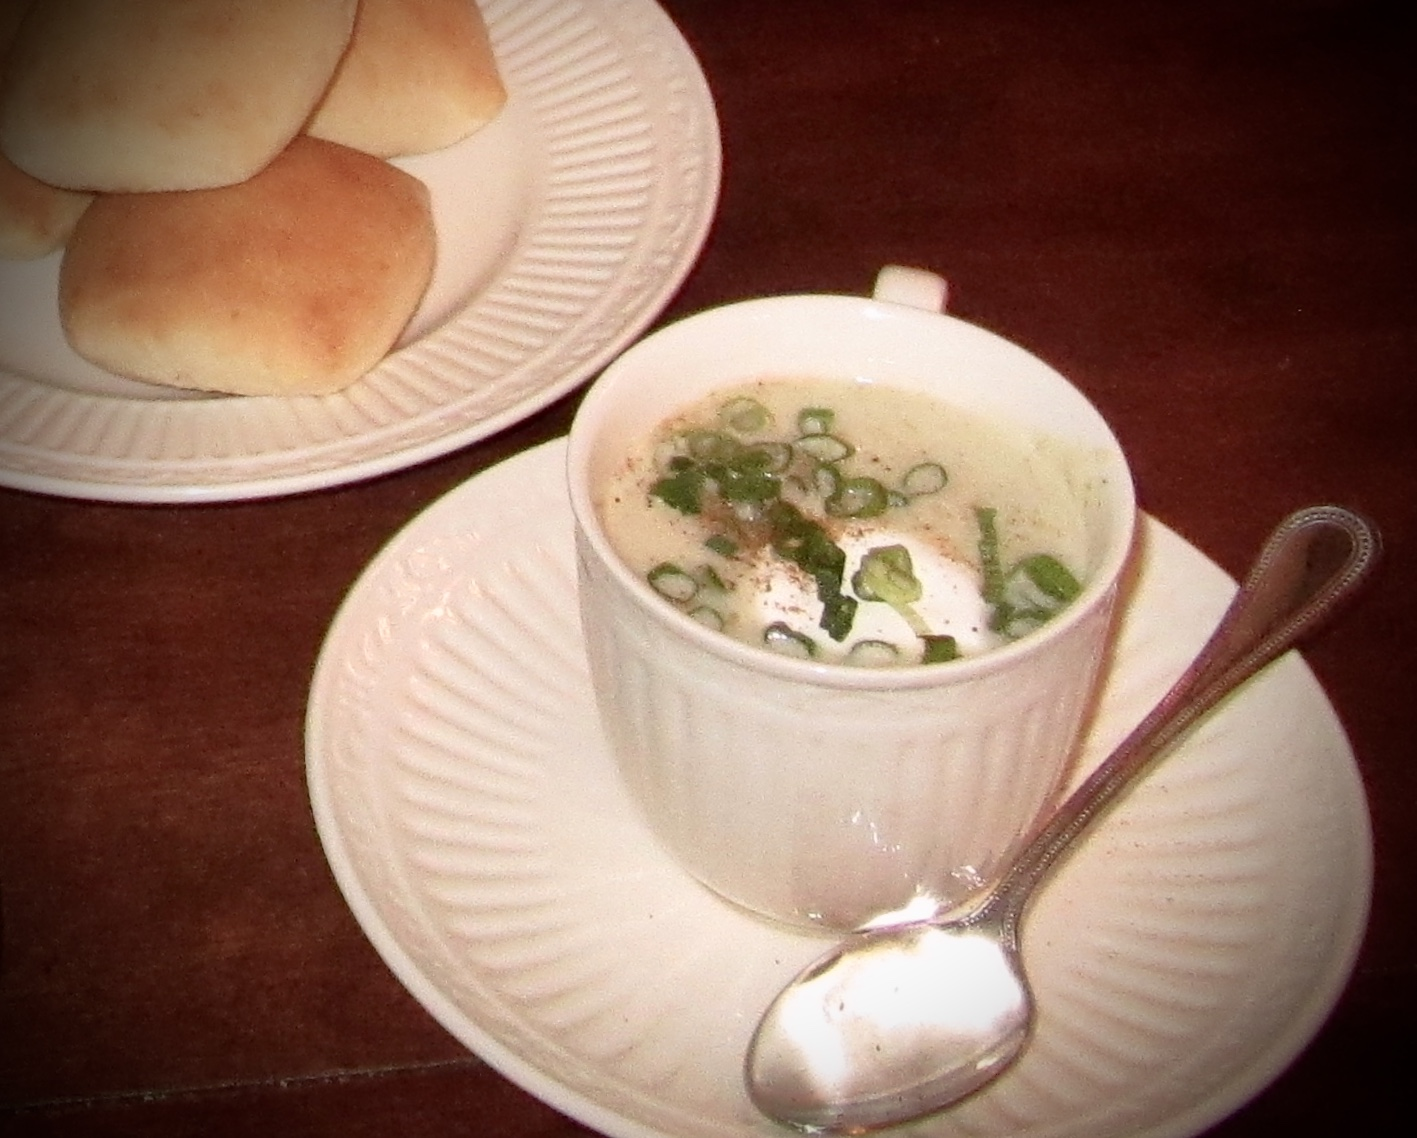 Perfect for a Cold Winter's Night: Smooth, Creamy, Wonderful Cauliflower Soup